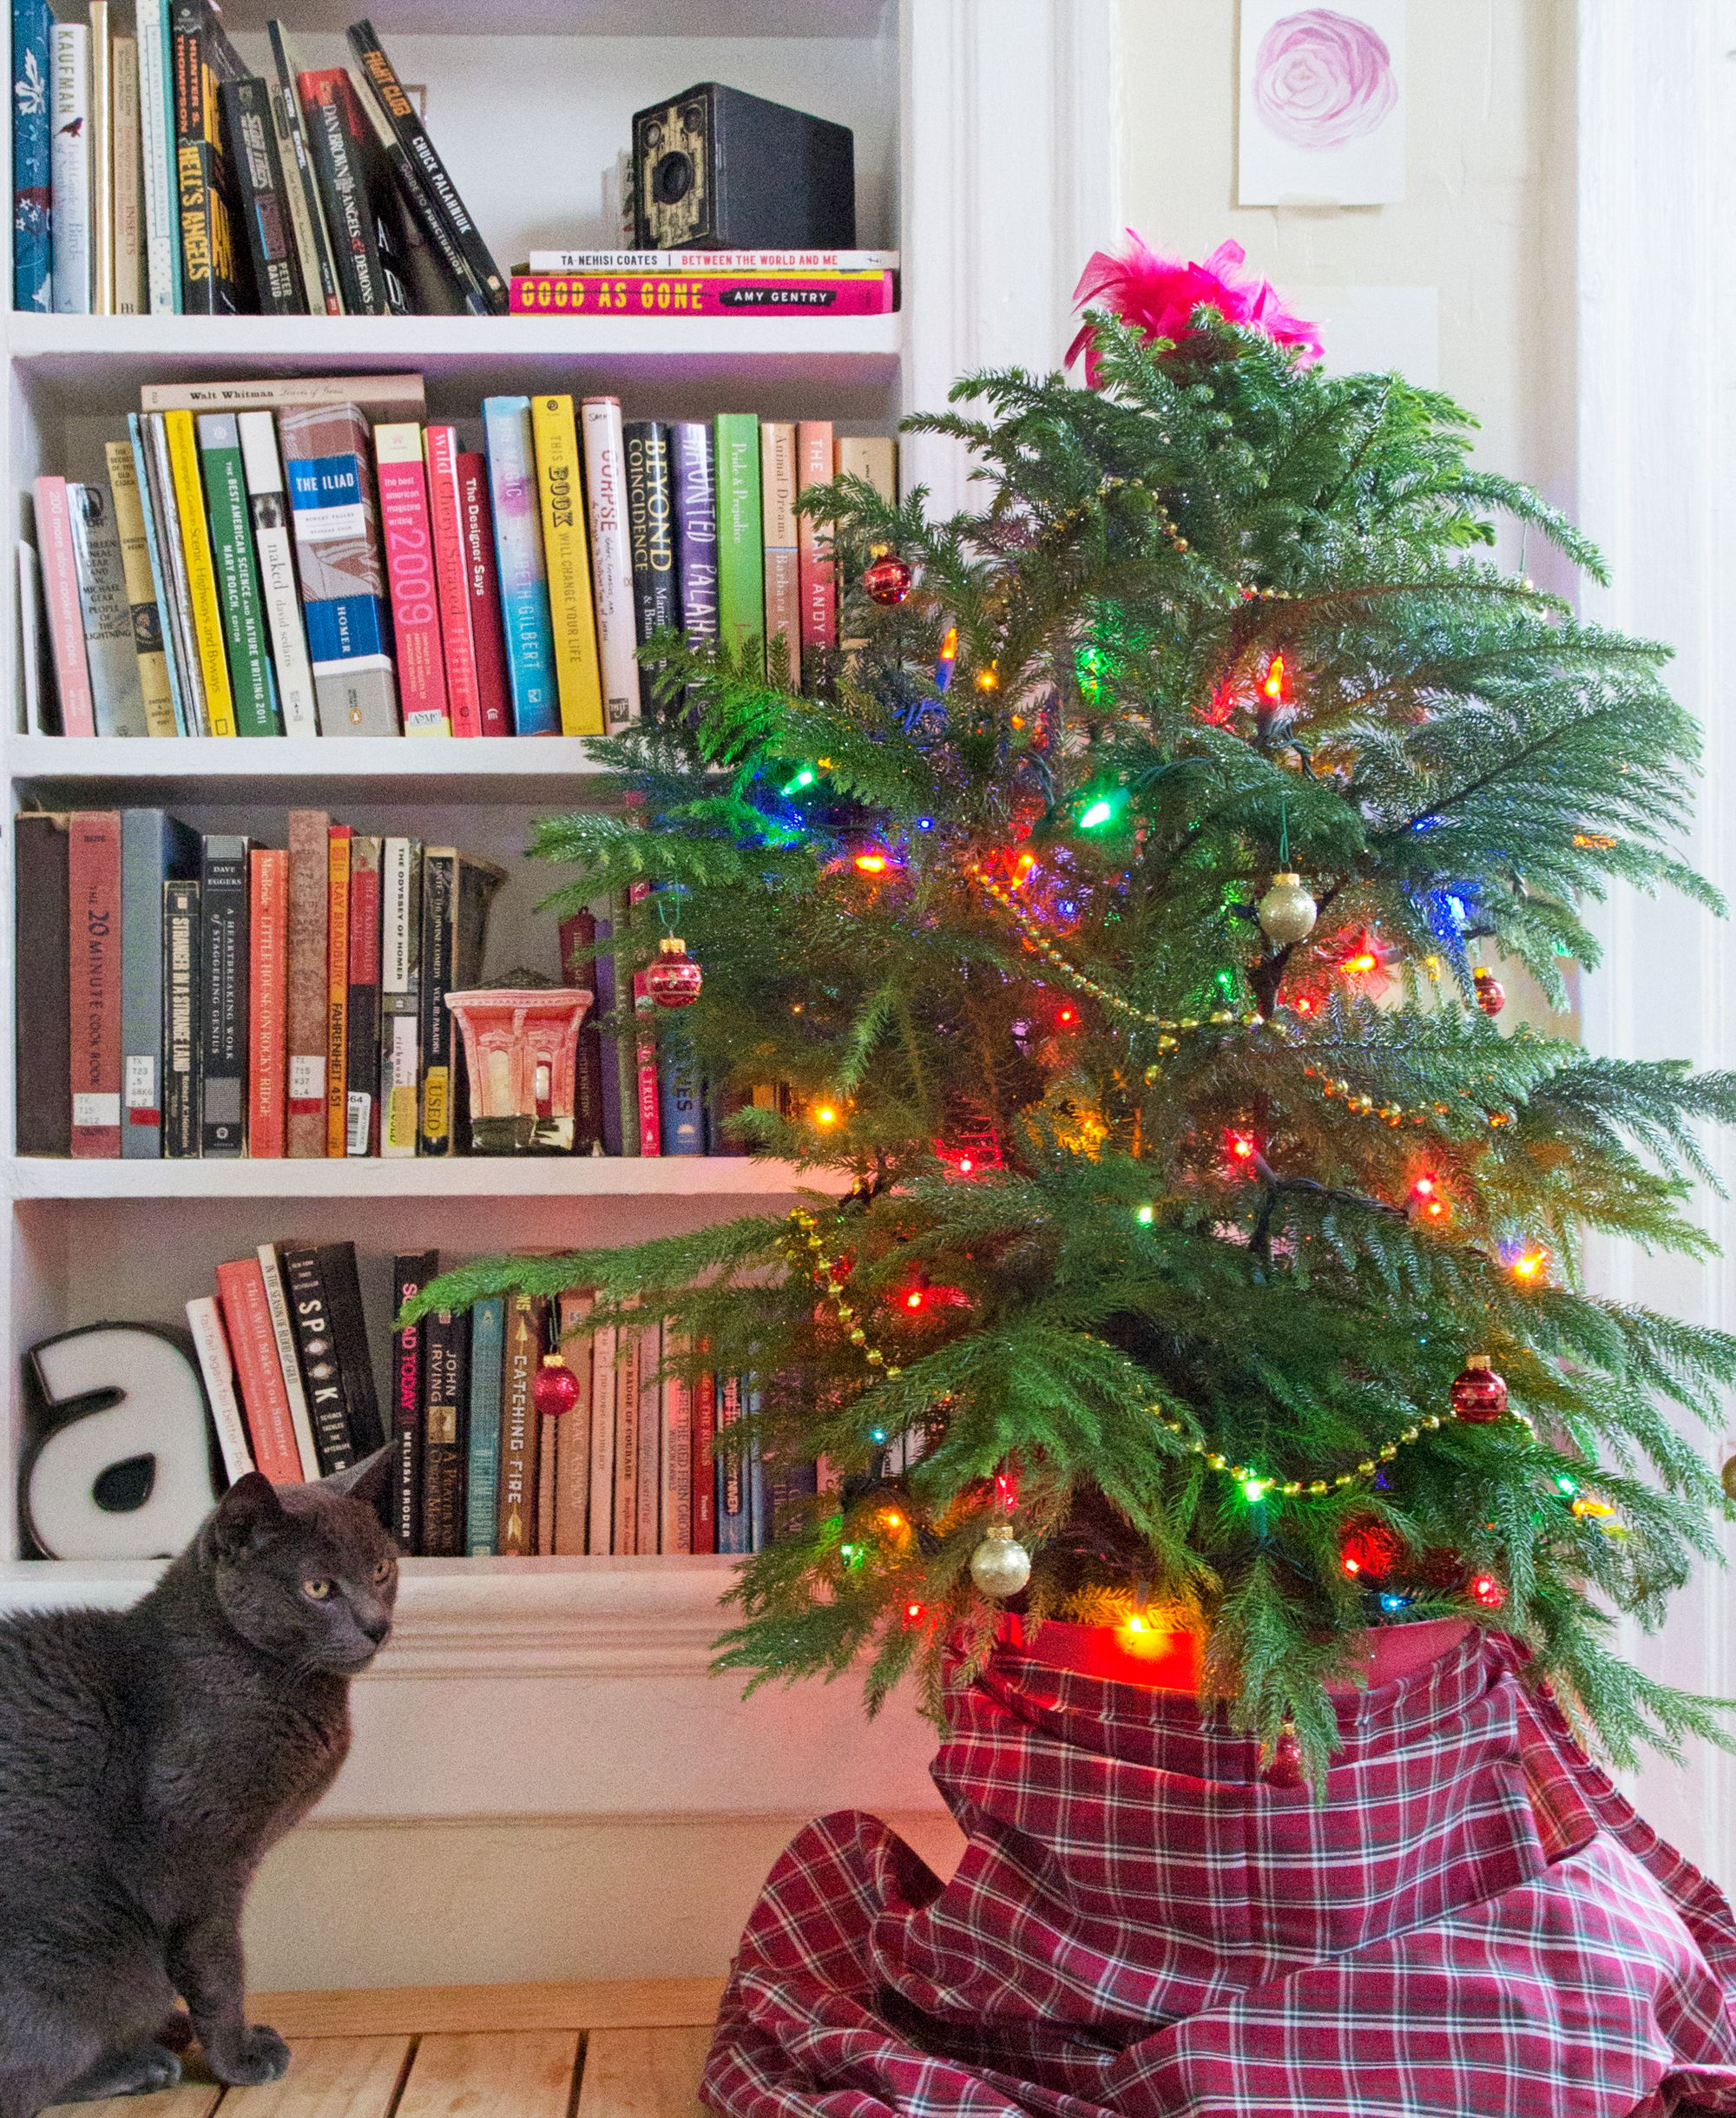 This Hardware Store Houseplant Is a Perfect Christmas Tree | HoHoHo ...